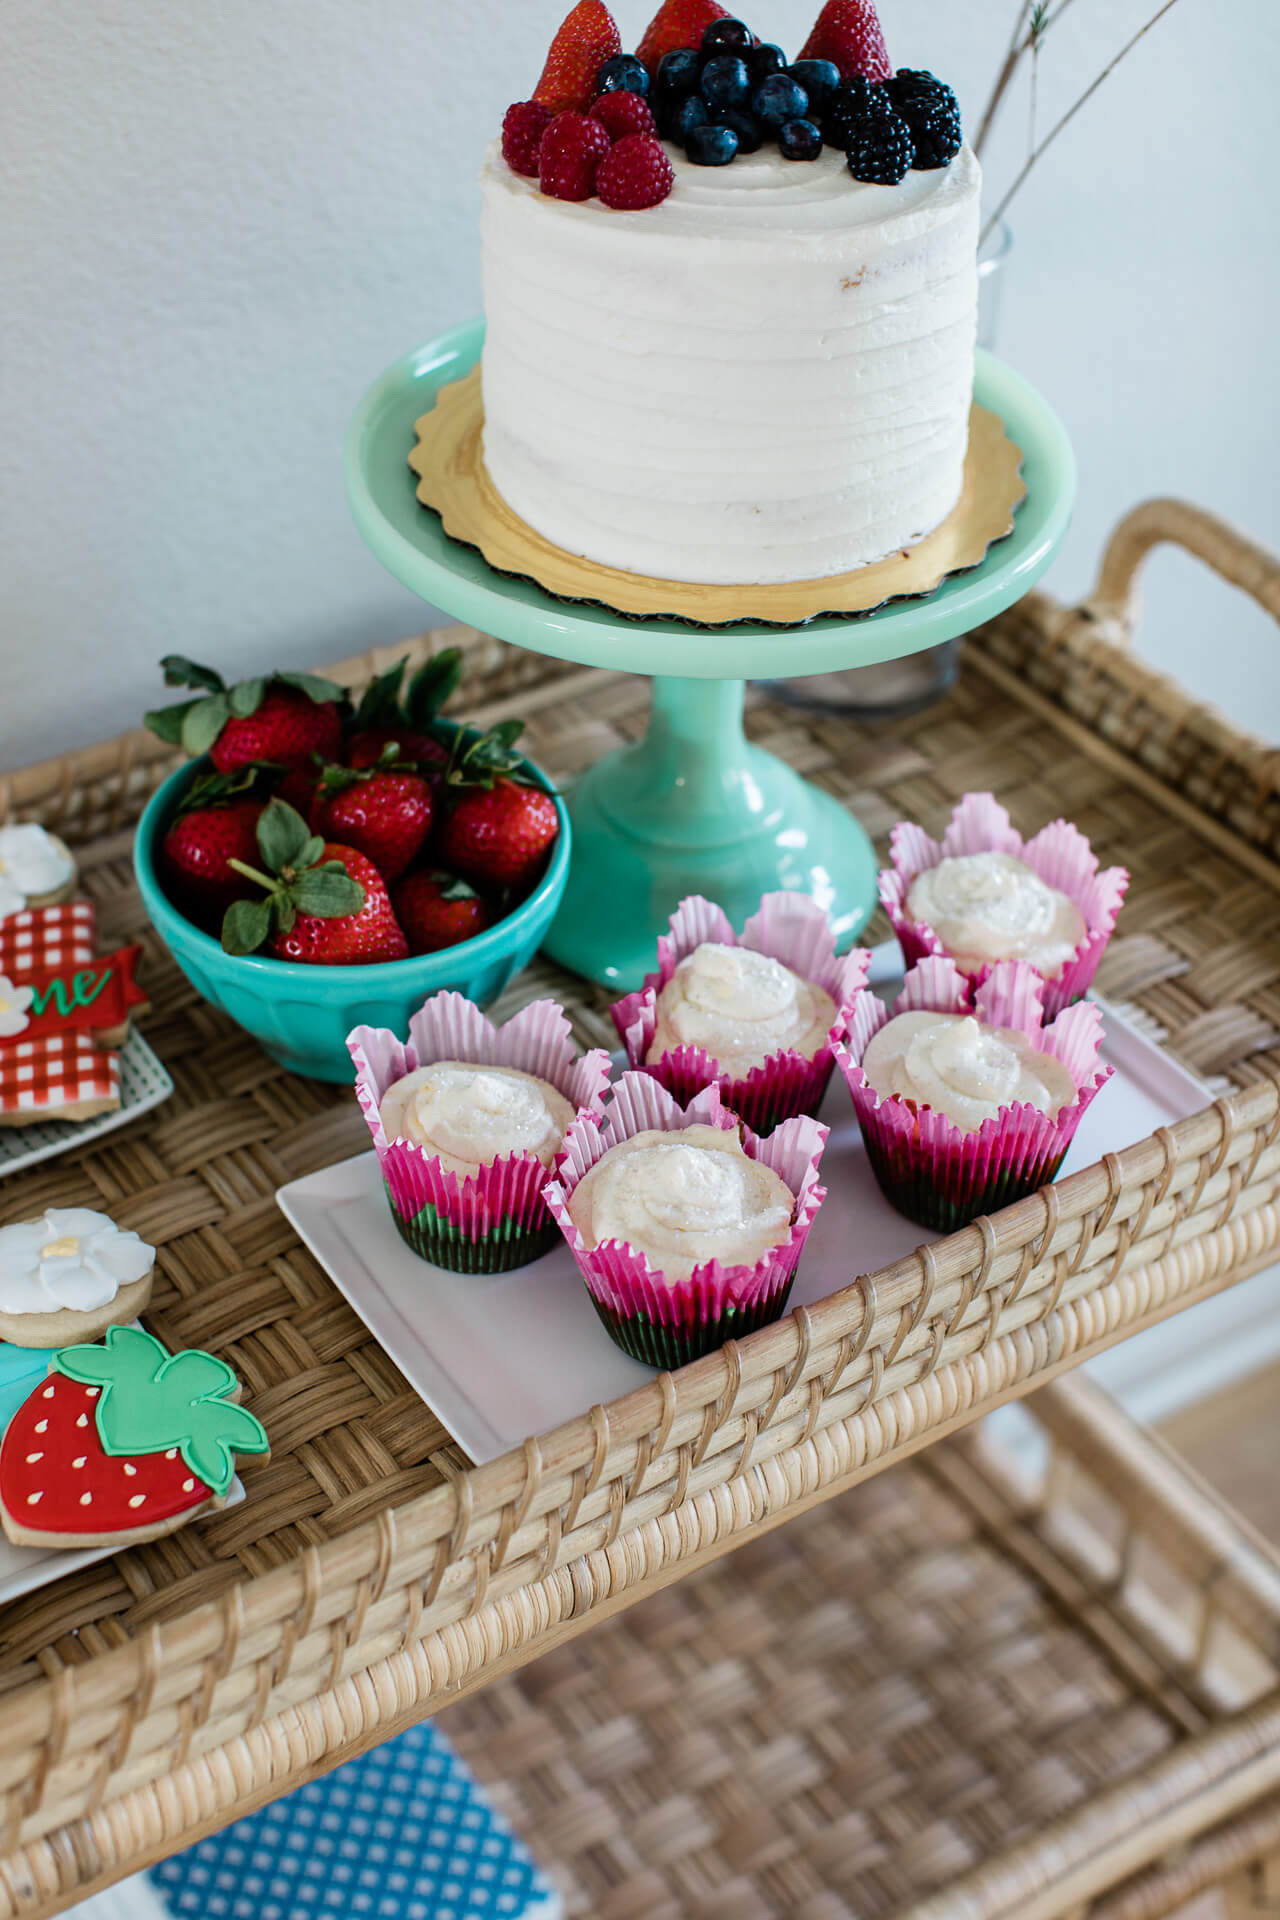 Cute strawberry desserts for baby's birthday! - M Loves M @marmar